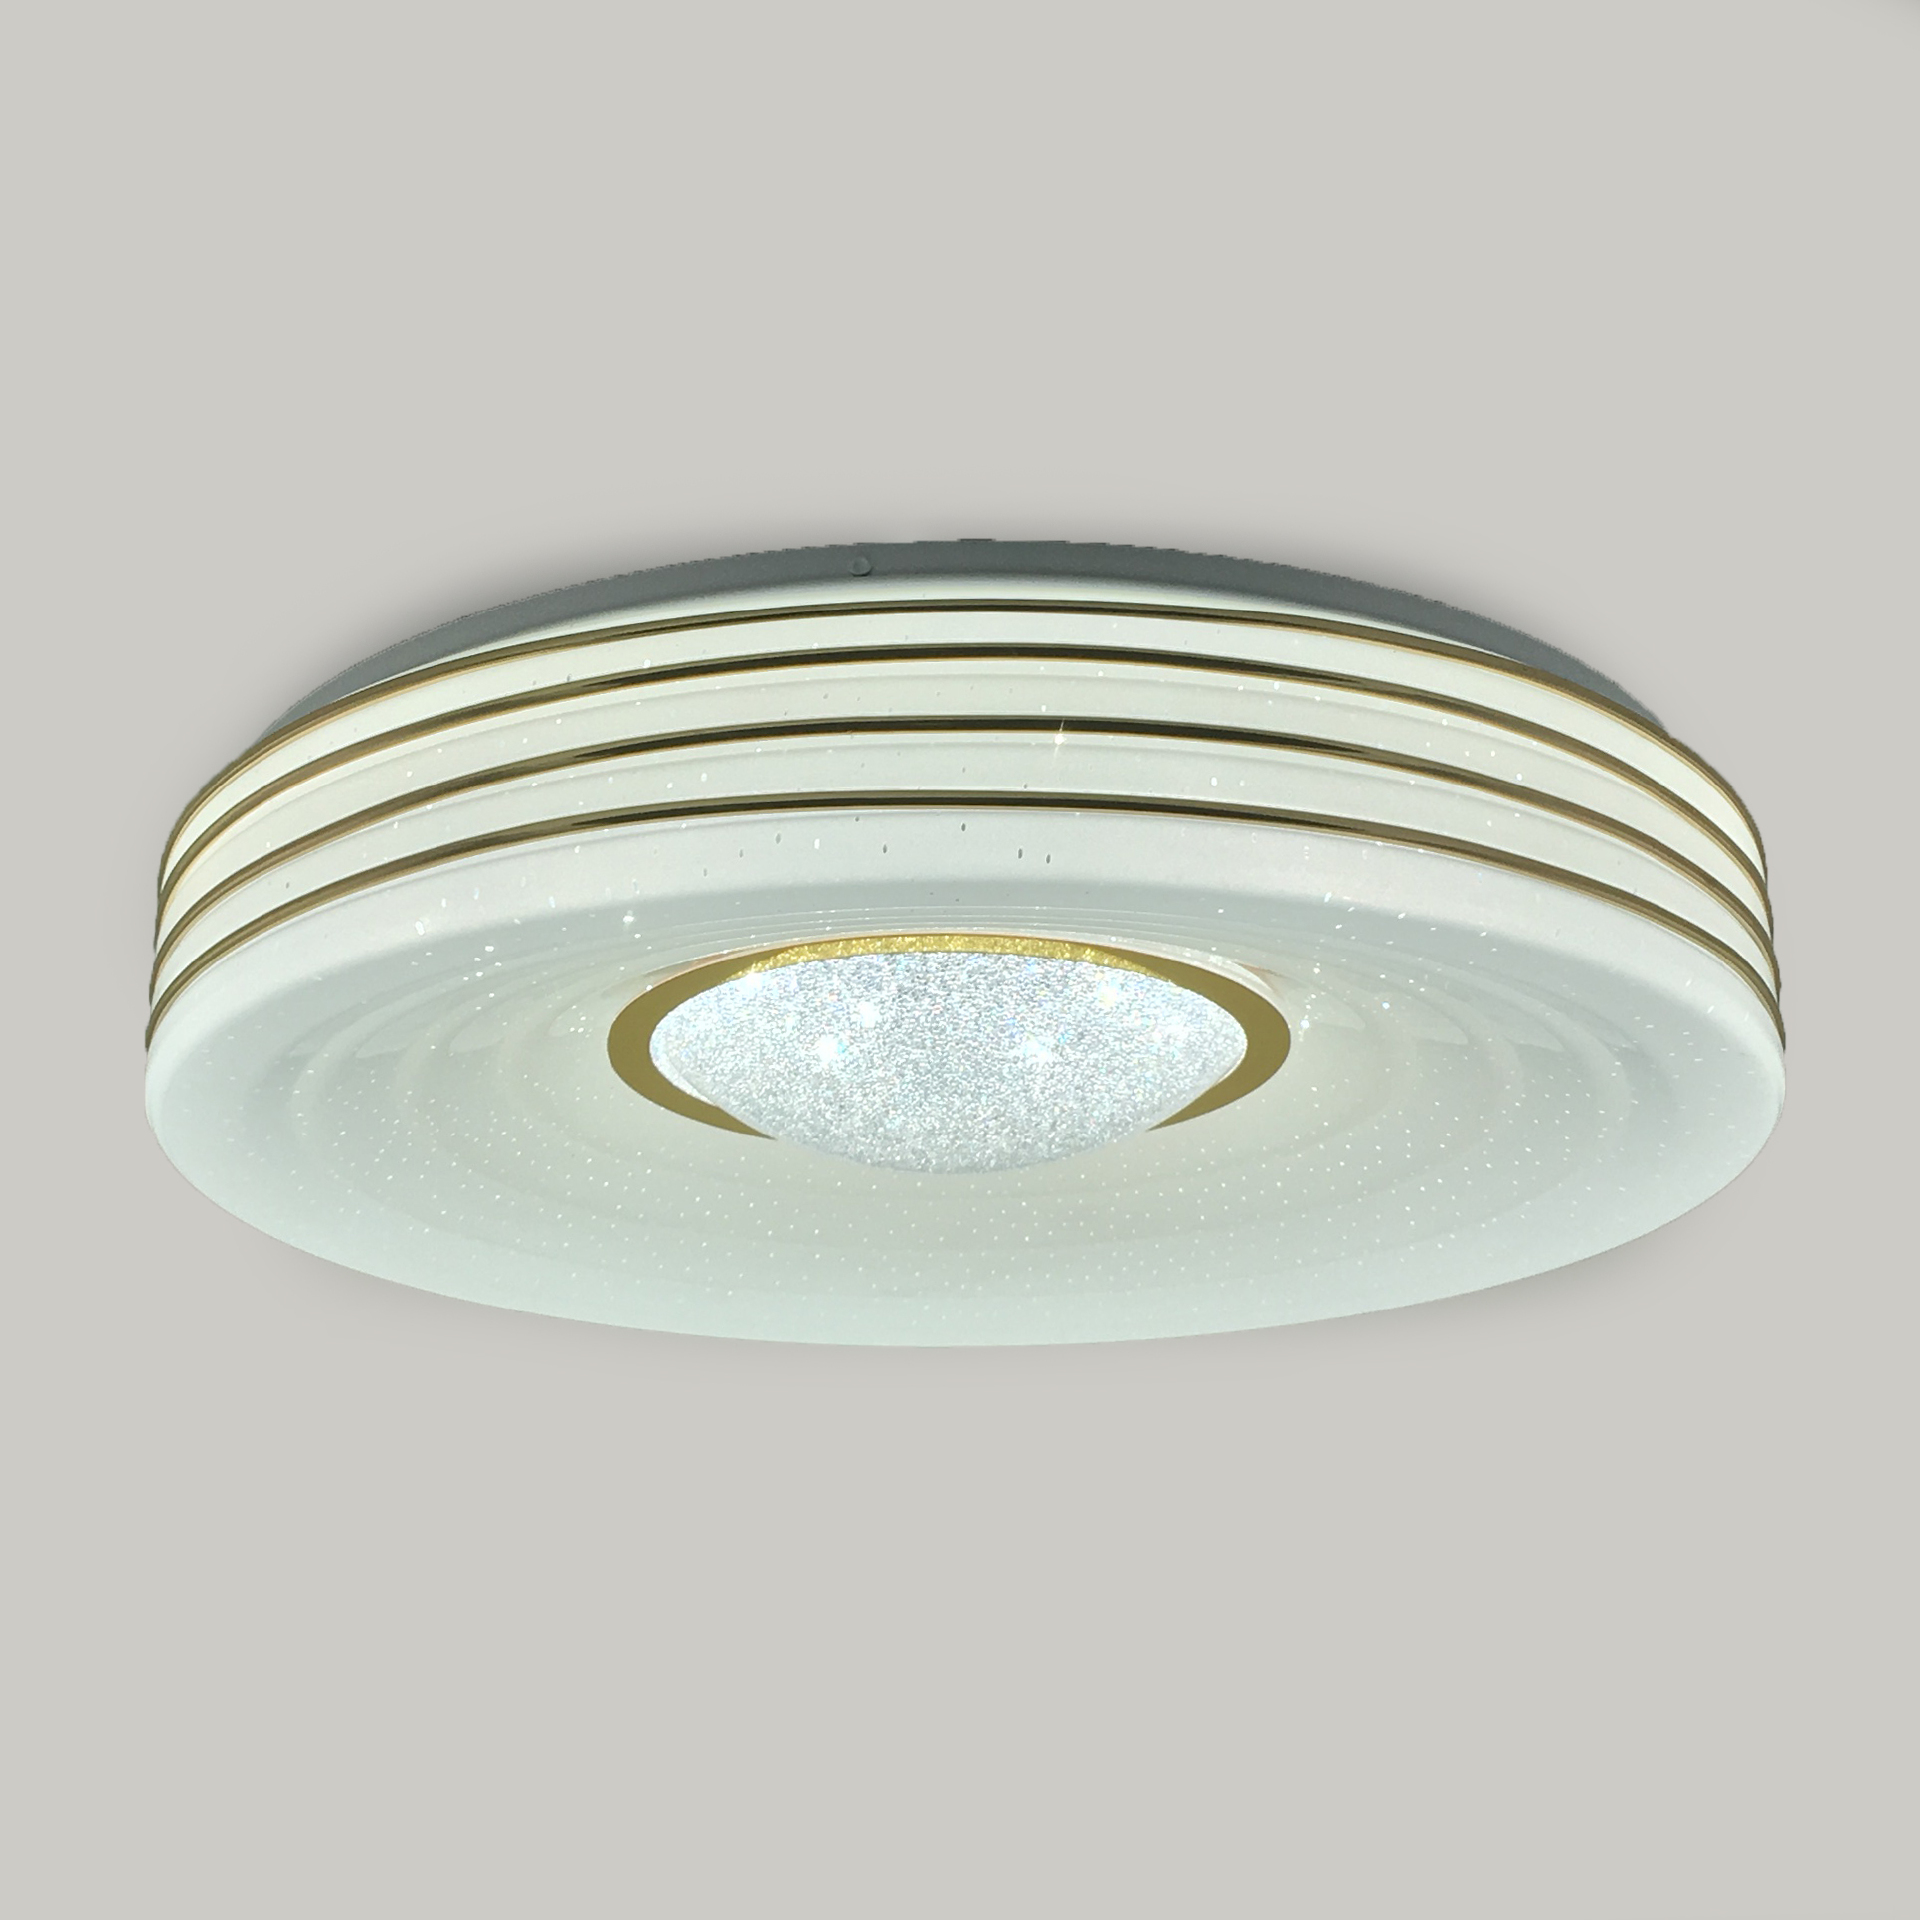 Hot sale remote control SMD living room led ceiling light